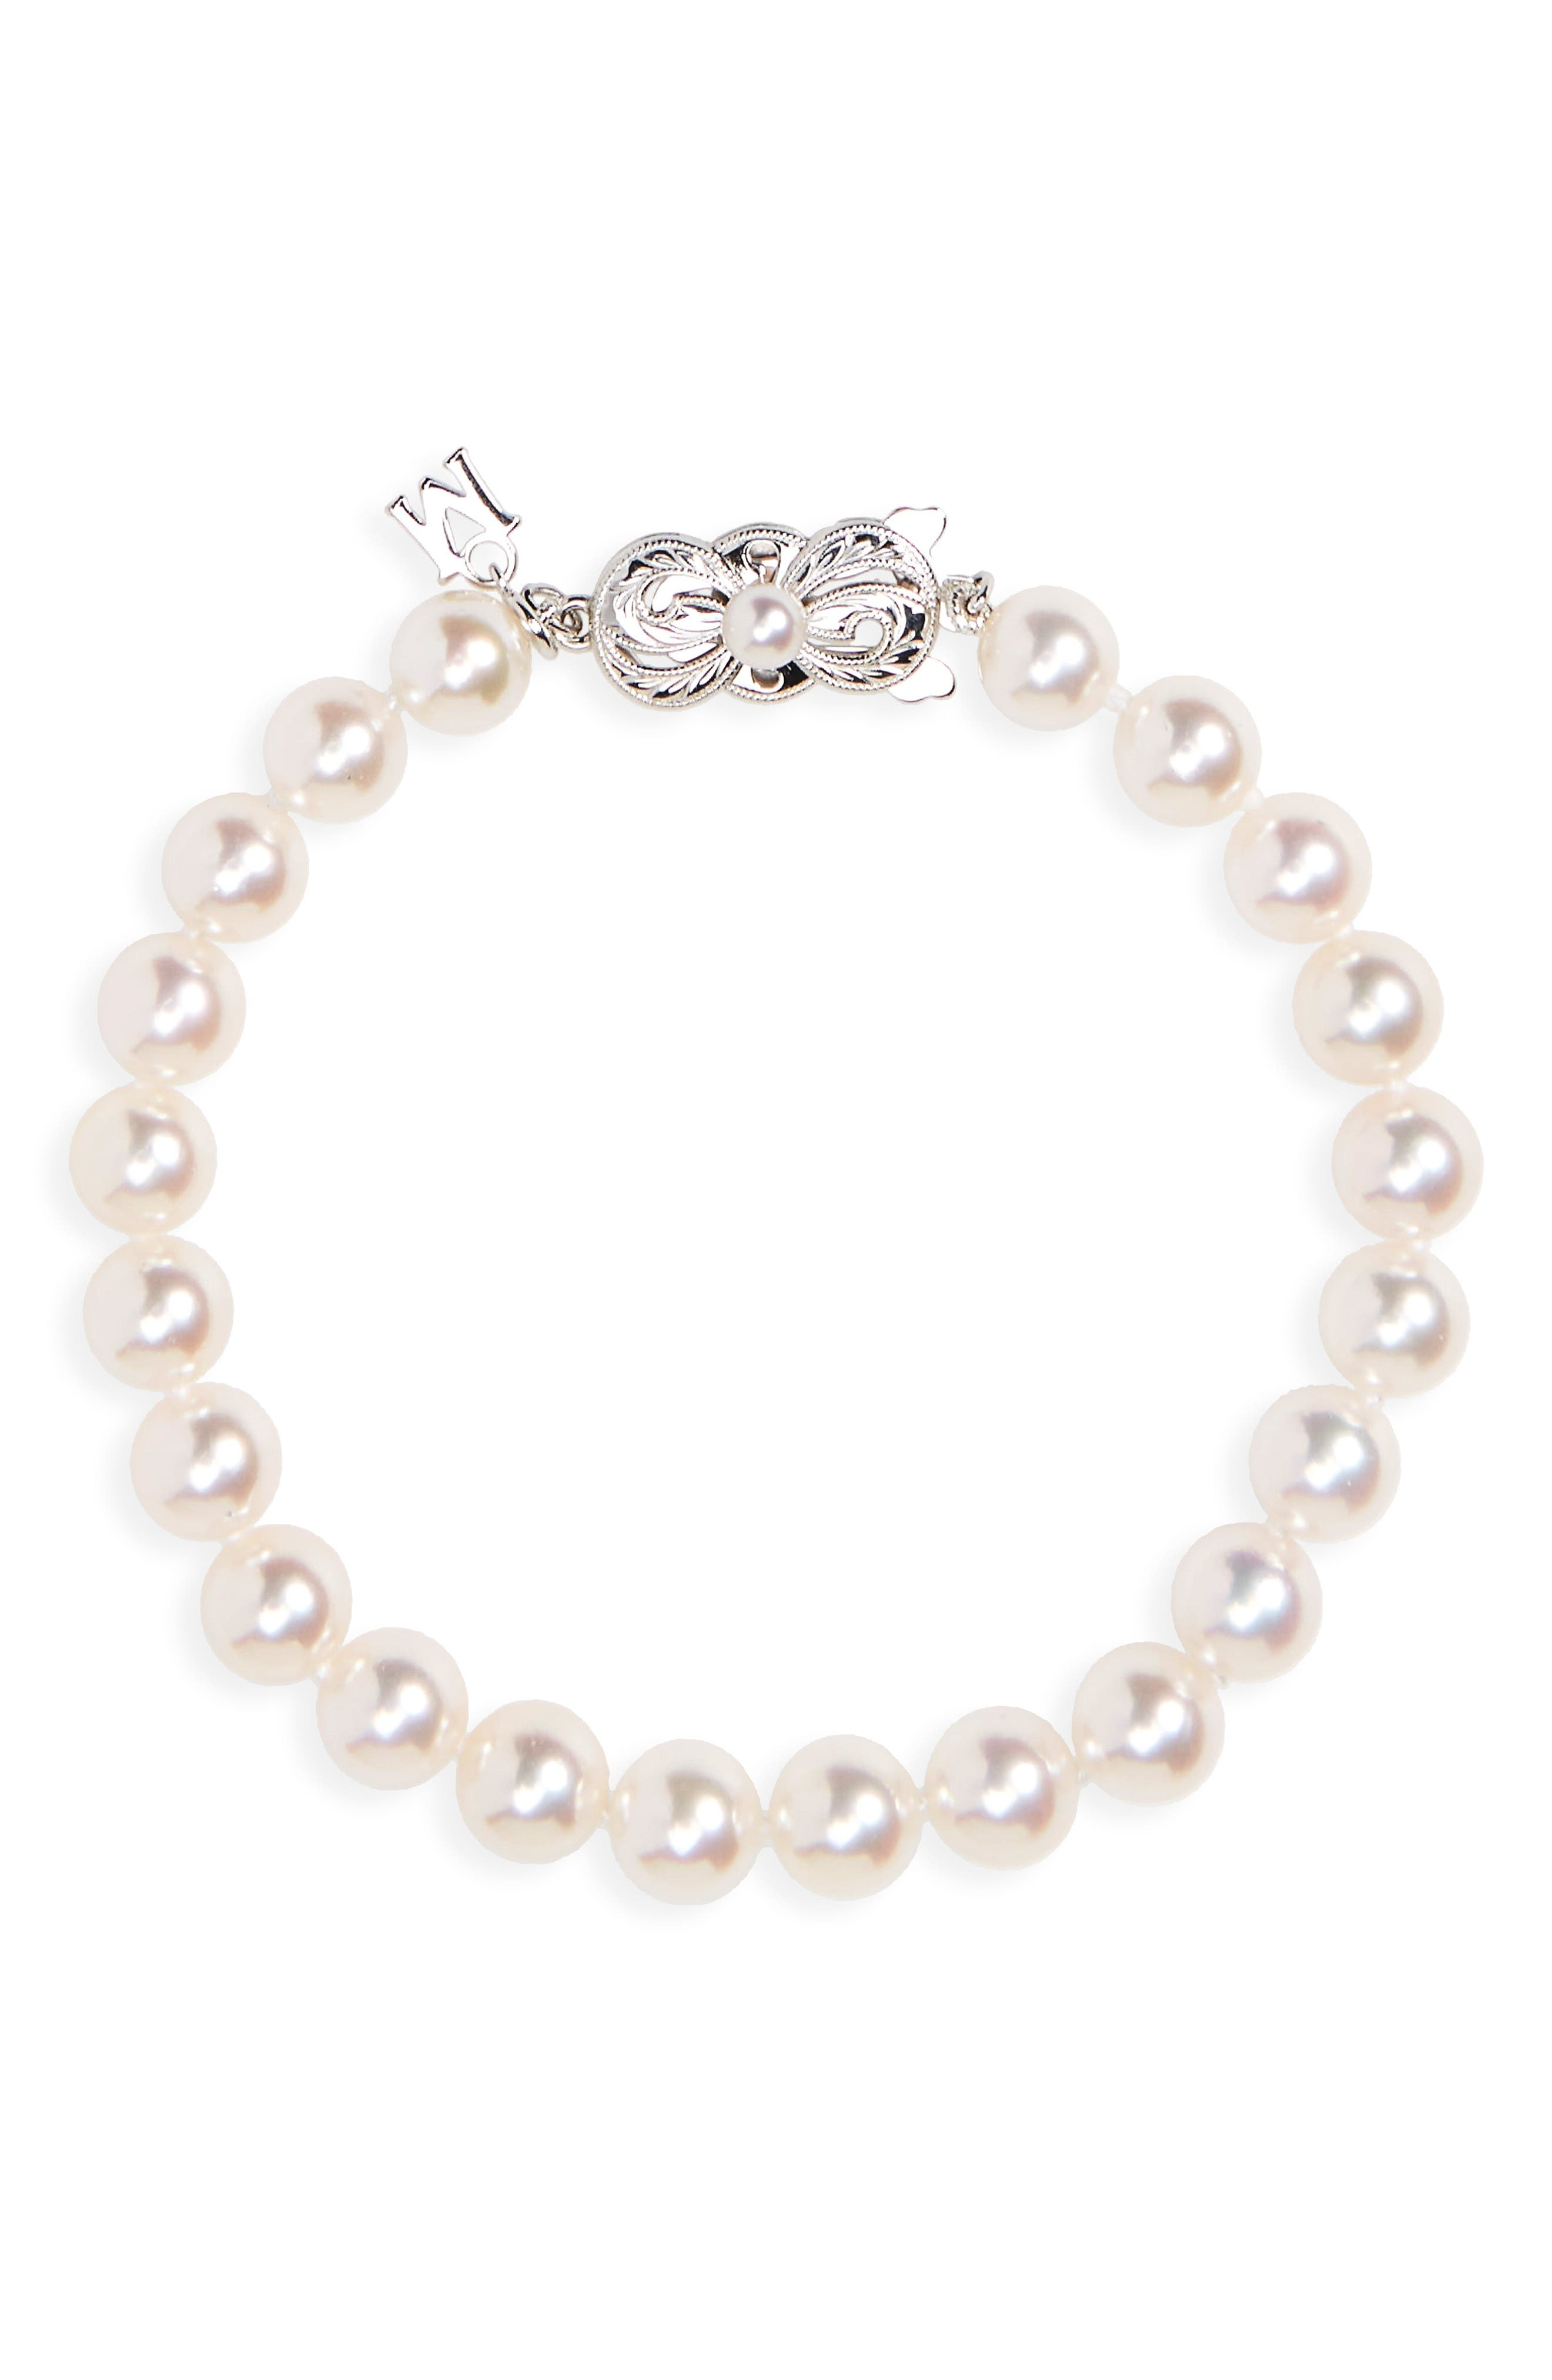 Every Essentials Cultured Pearl Bracelet